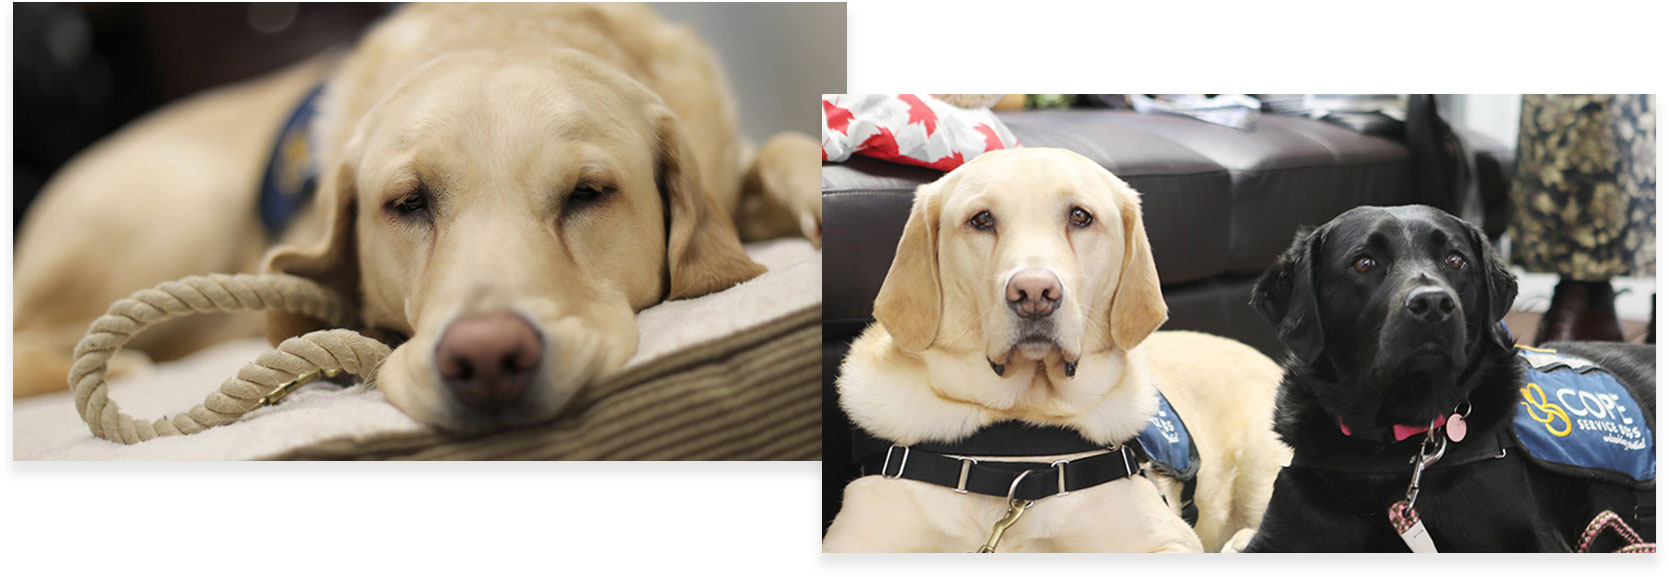 moose and beacon (our service dogs)